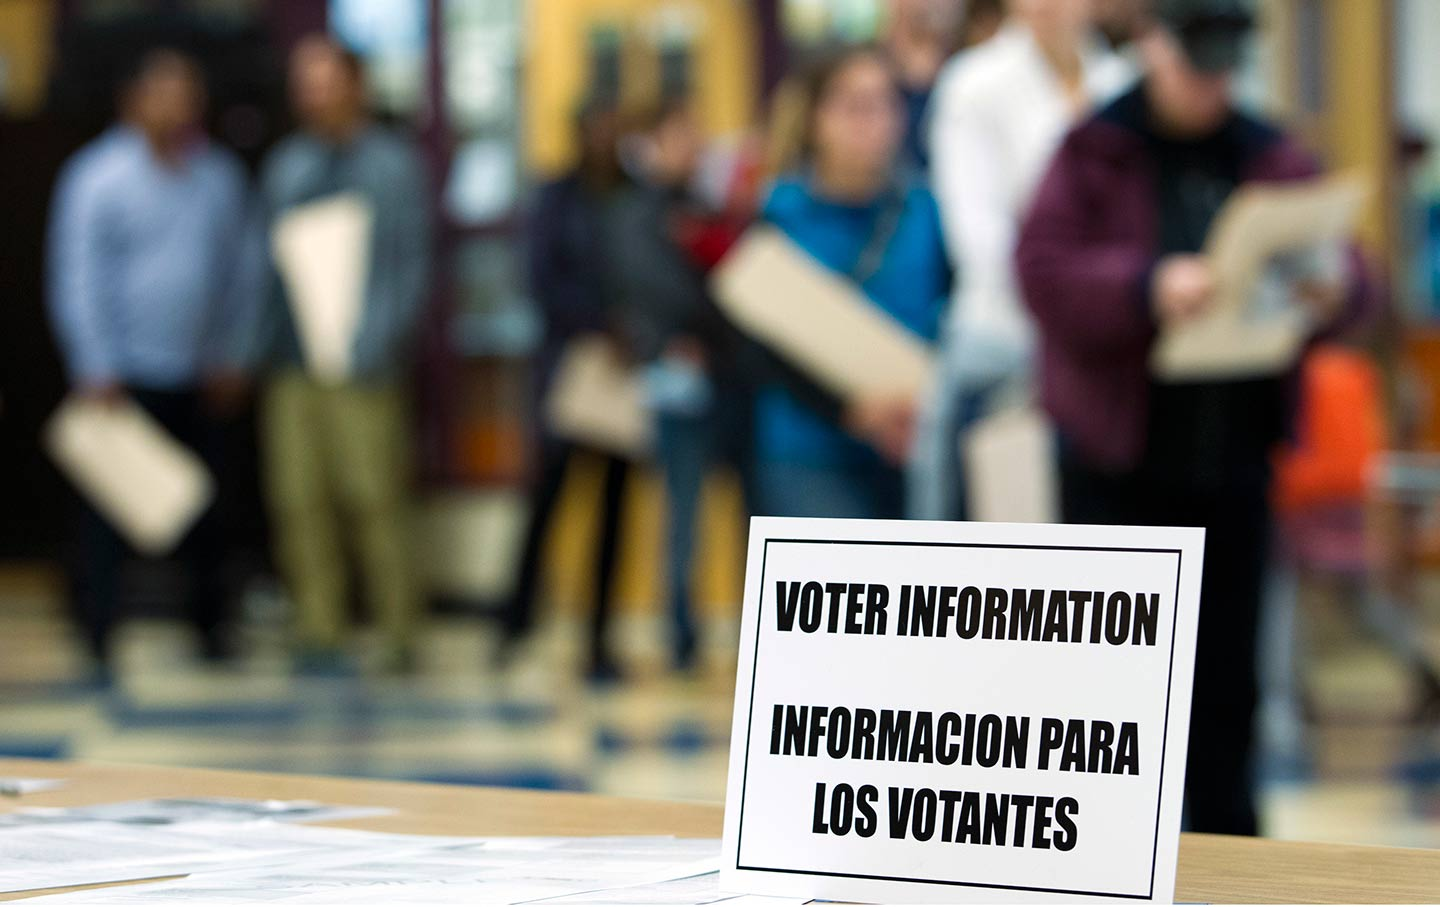 Information Sign About Voting in Spanish